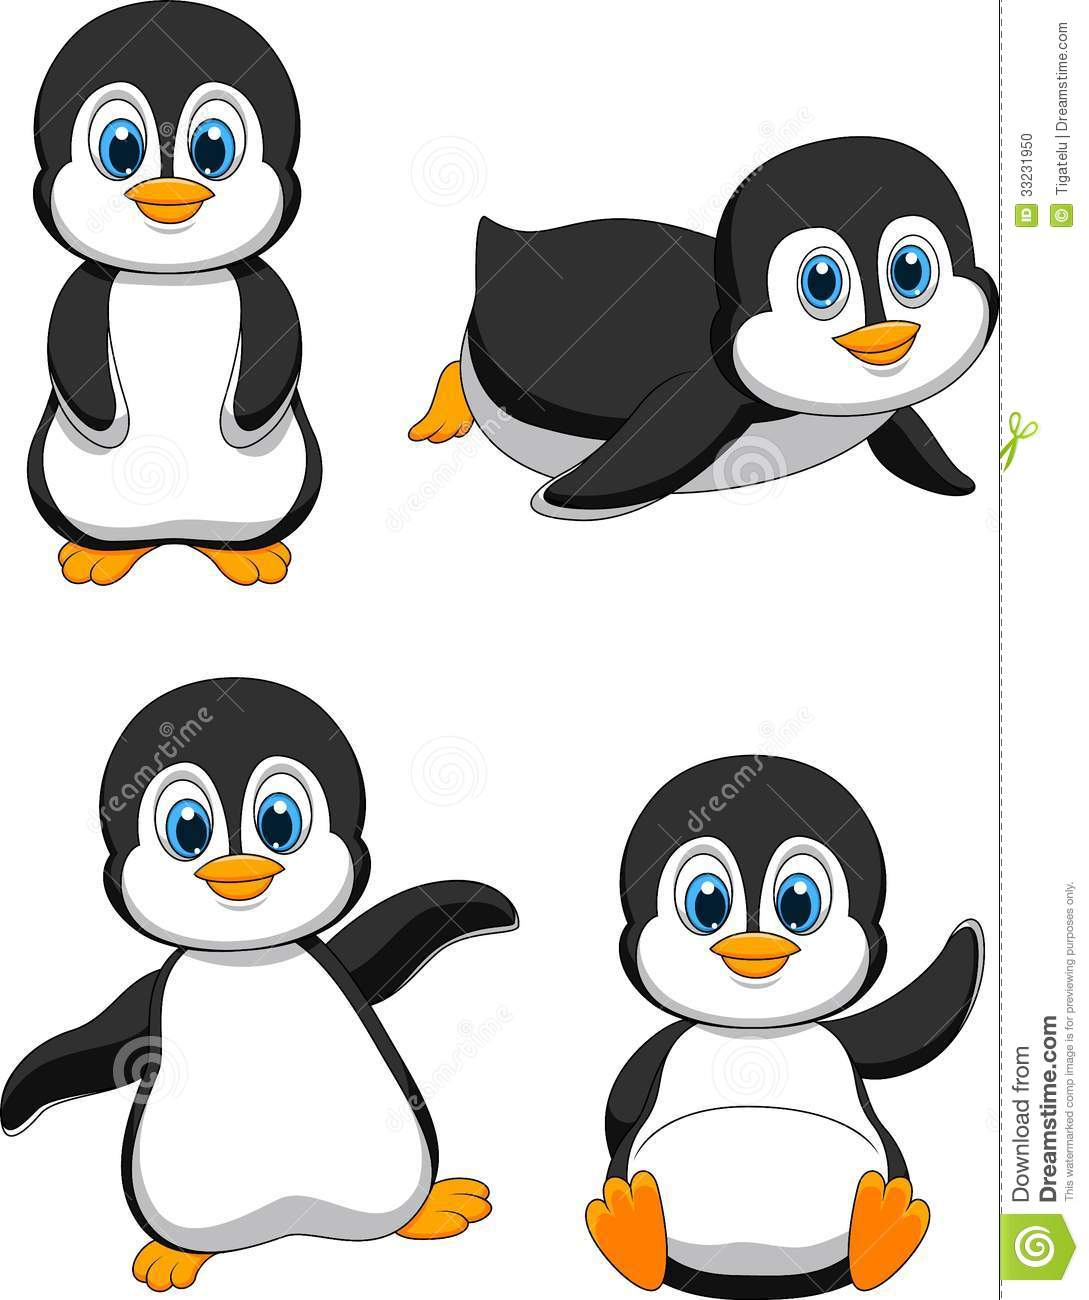 Cute Penguin Cartoon Stock Photo - Image: 33231950